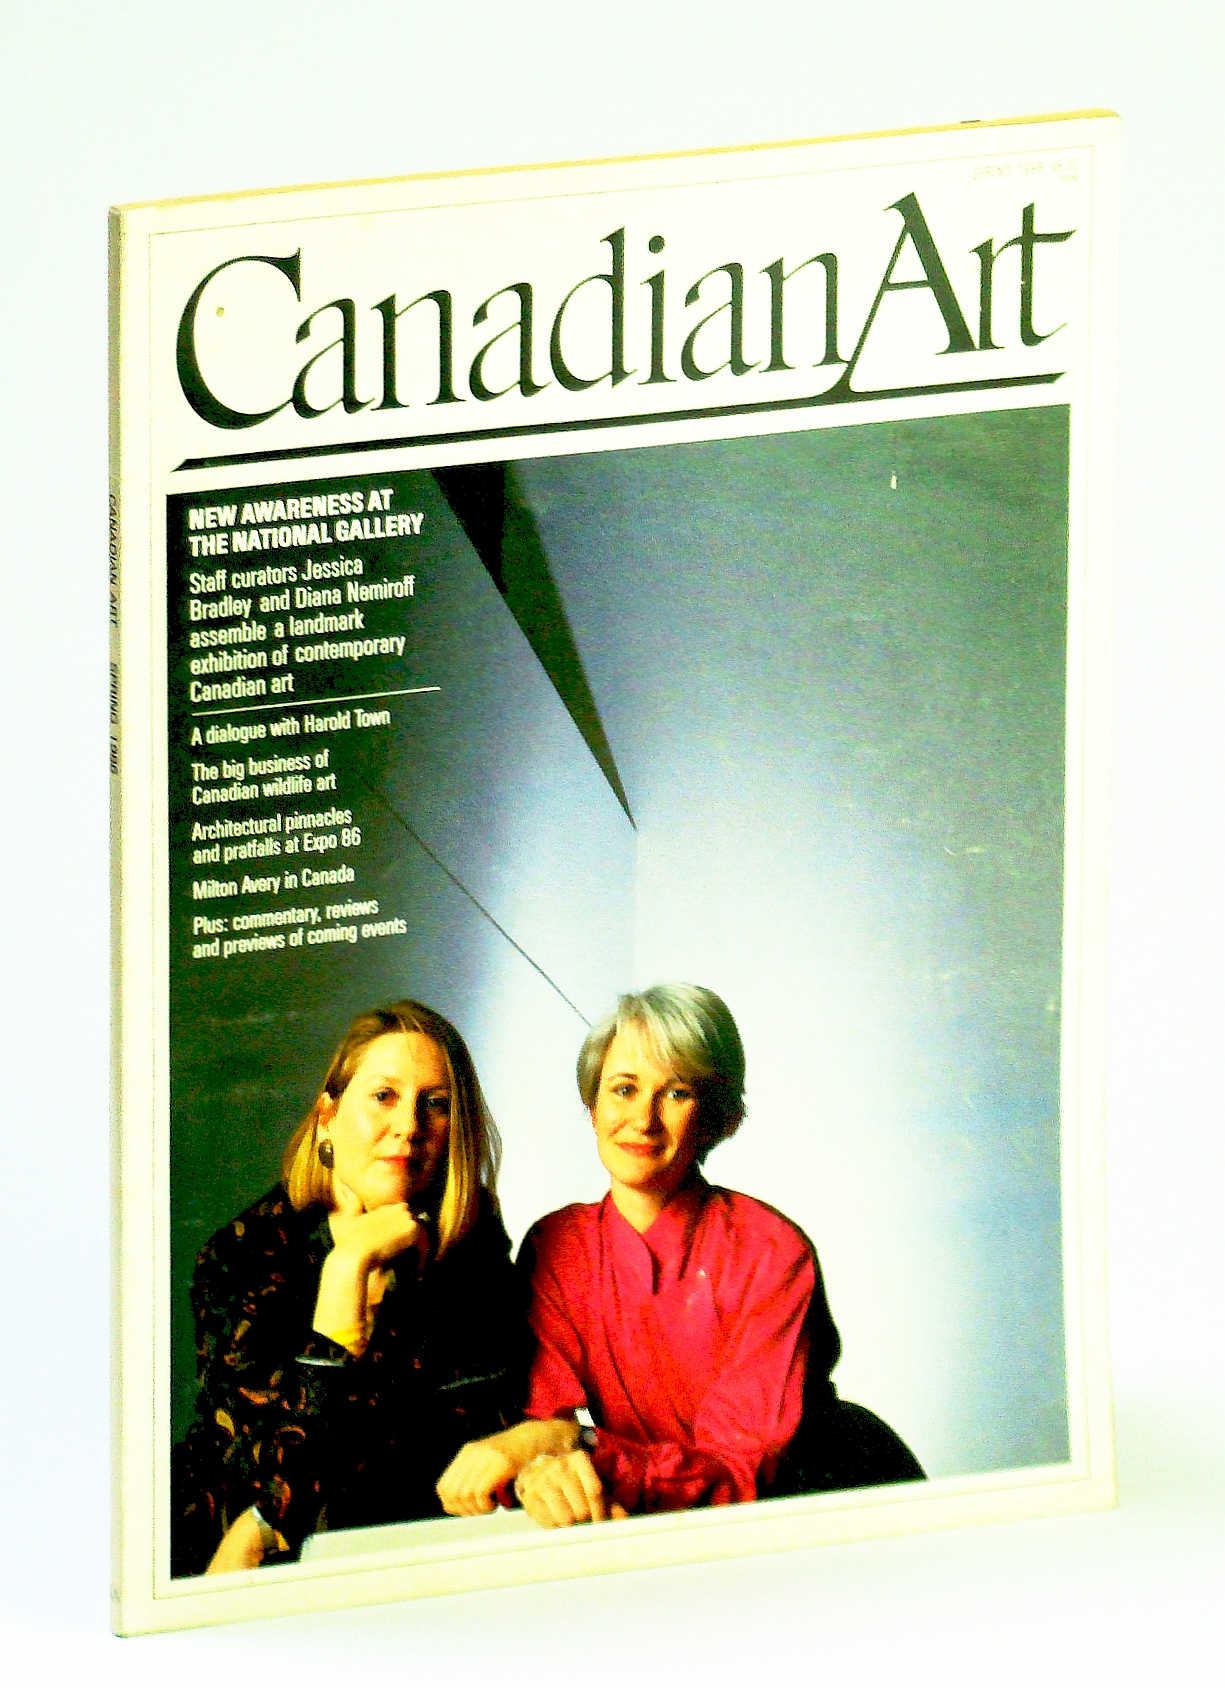 Image for Canadian Art (Magazine), Spring / March 1986, Volume 3, Number 1 - Harold Town / Donigan Cumming